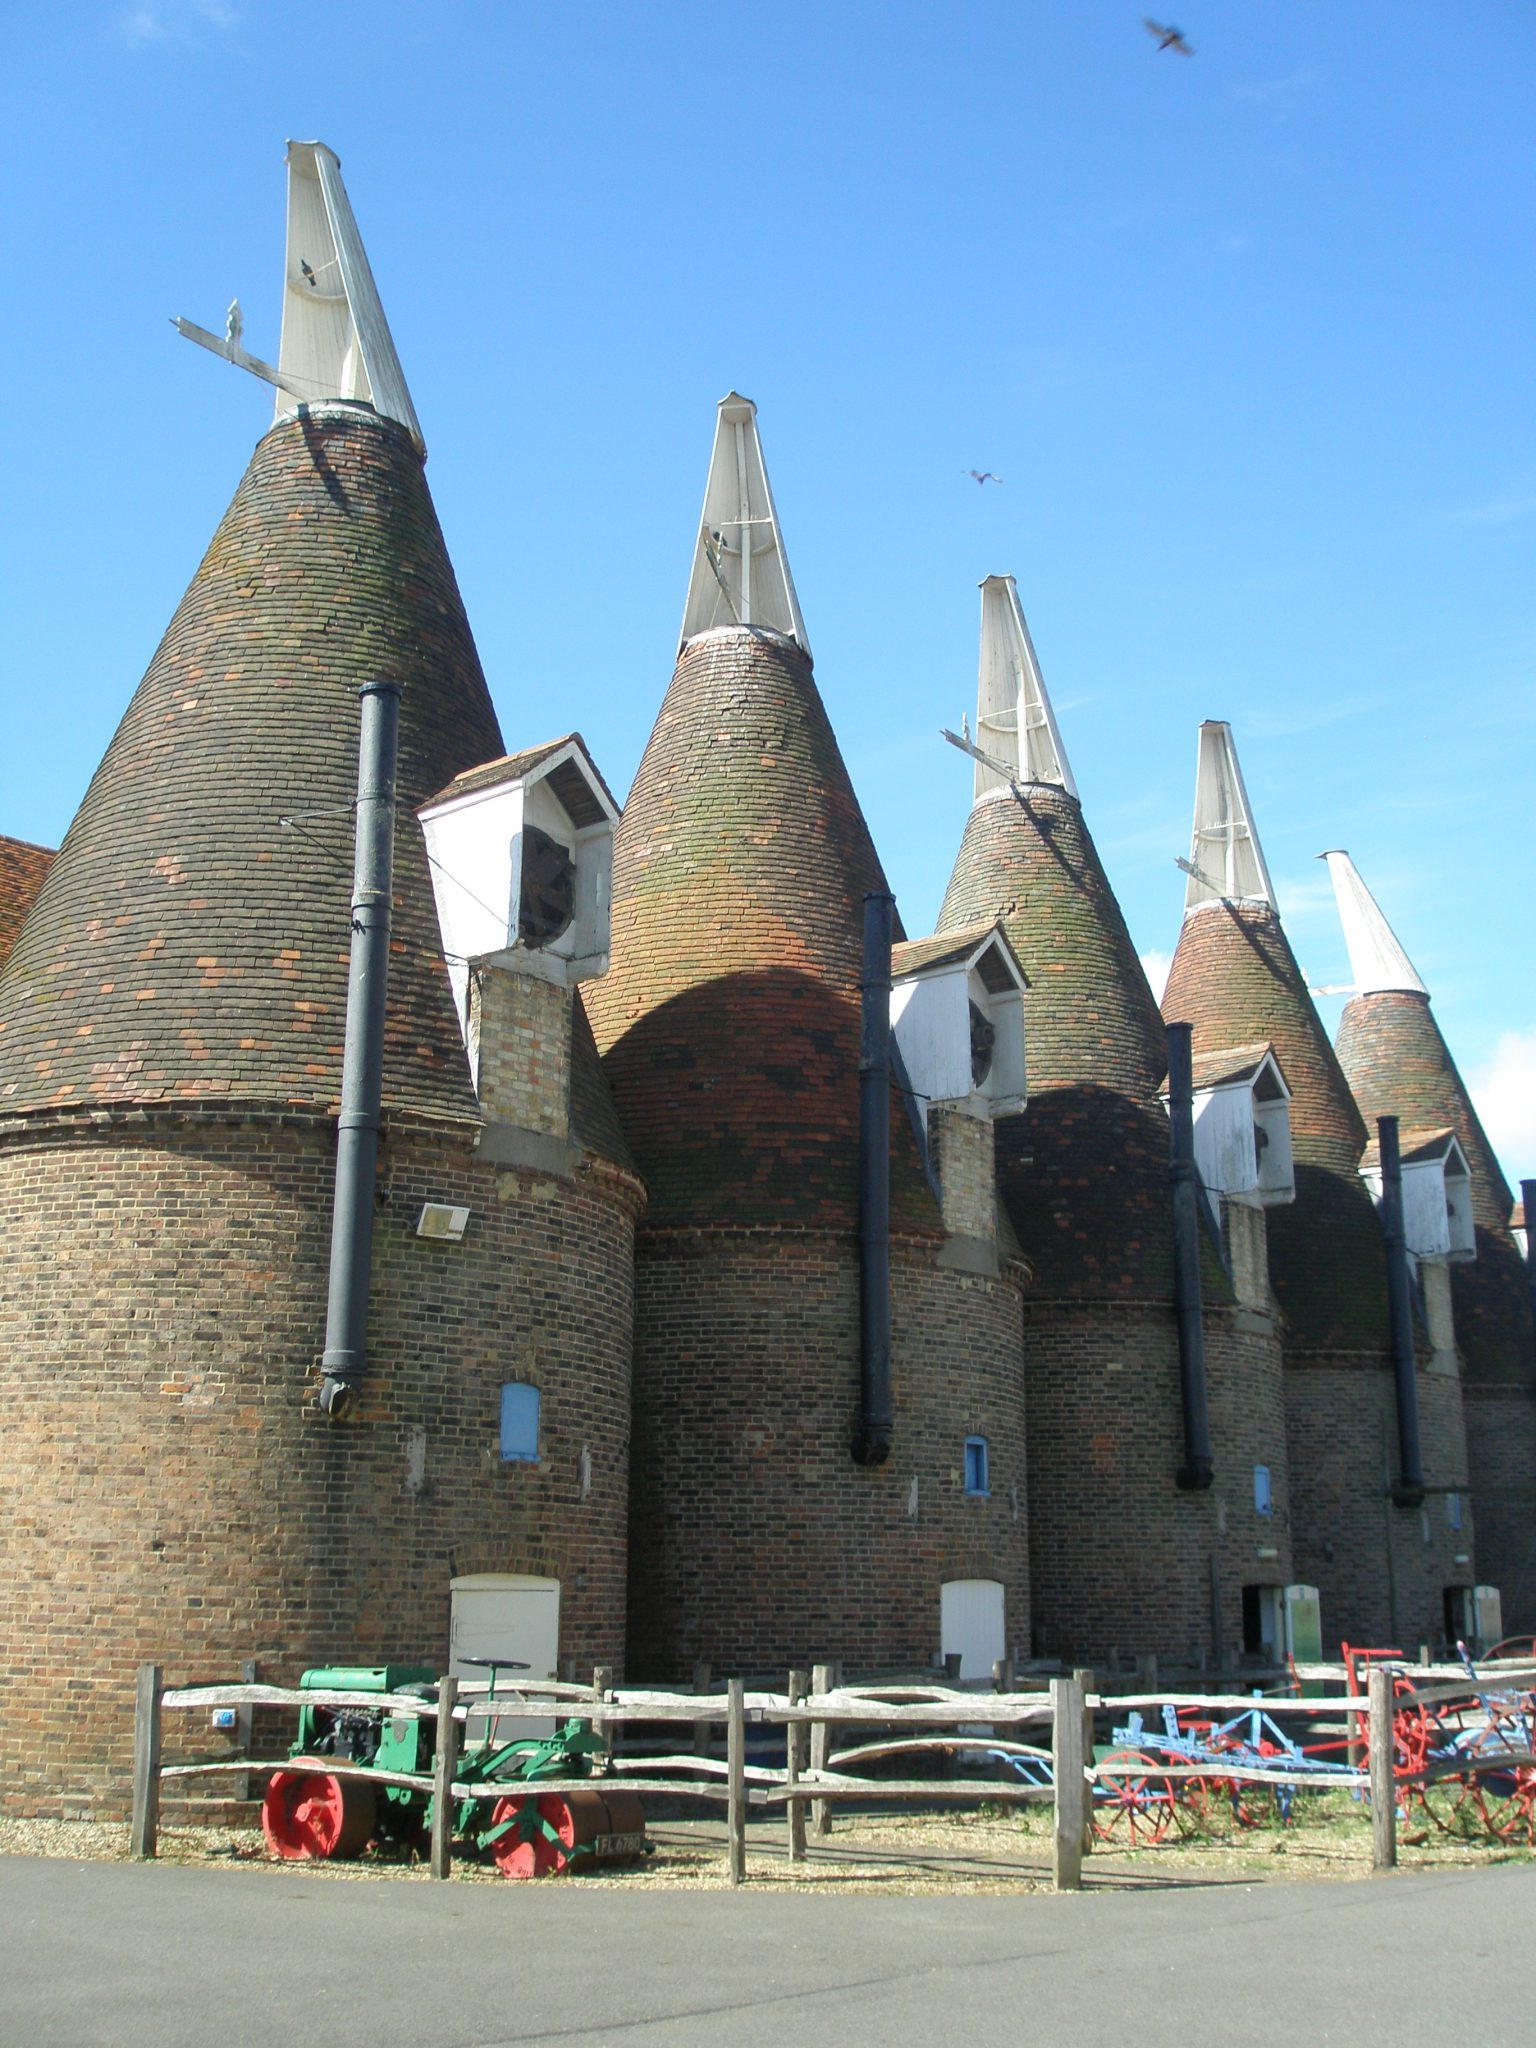 A full view of the Oast Houses at The Hop Farm Family Park